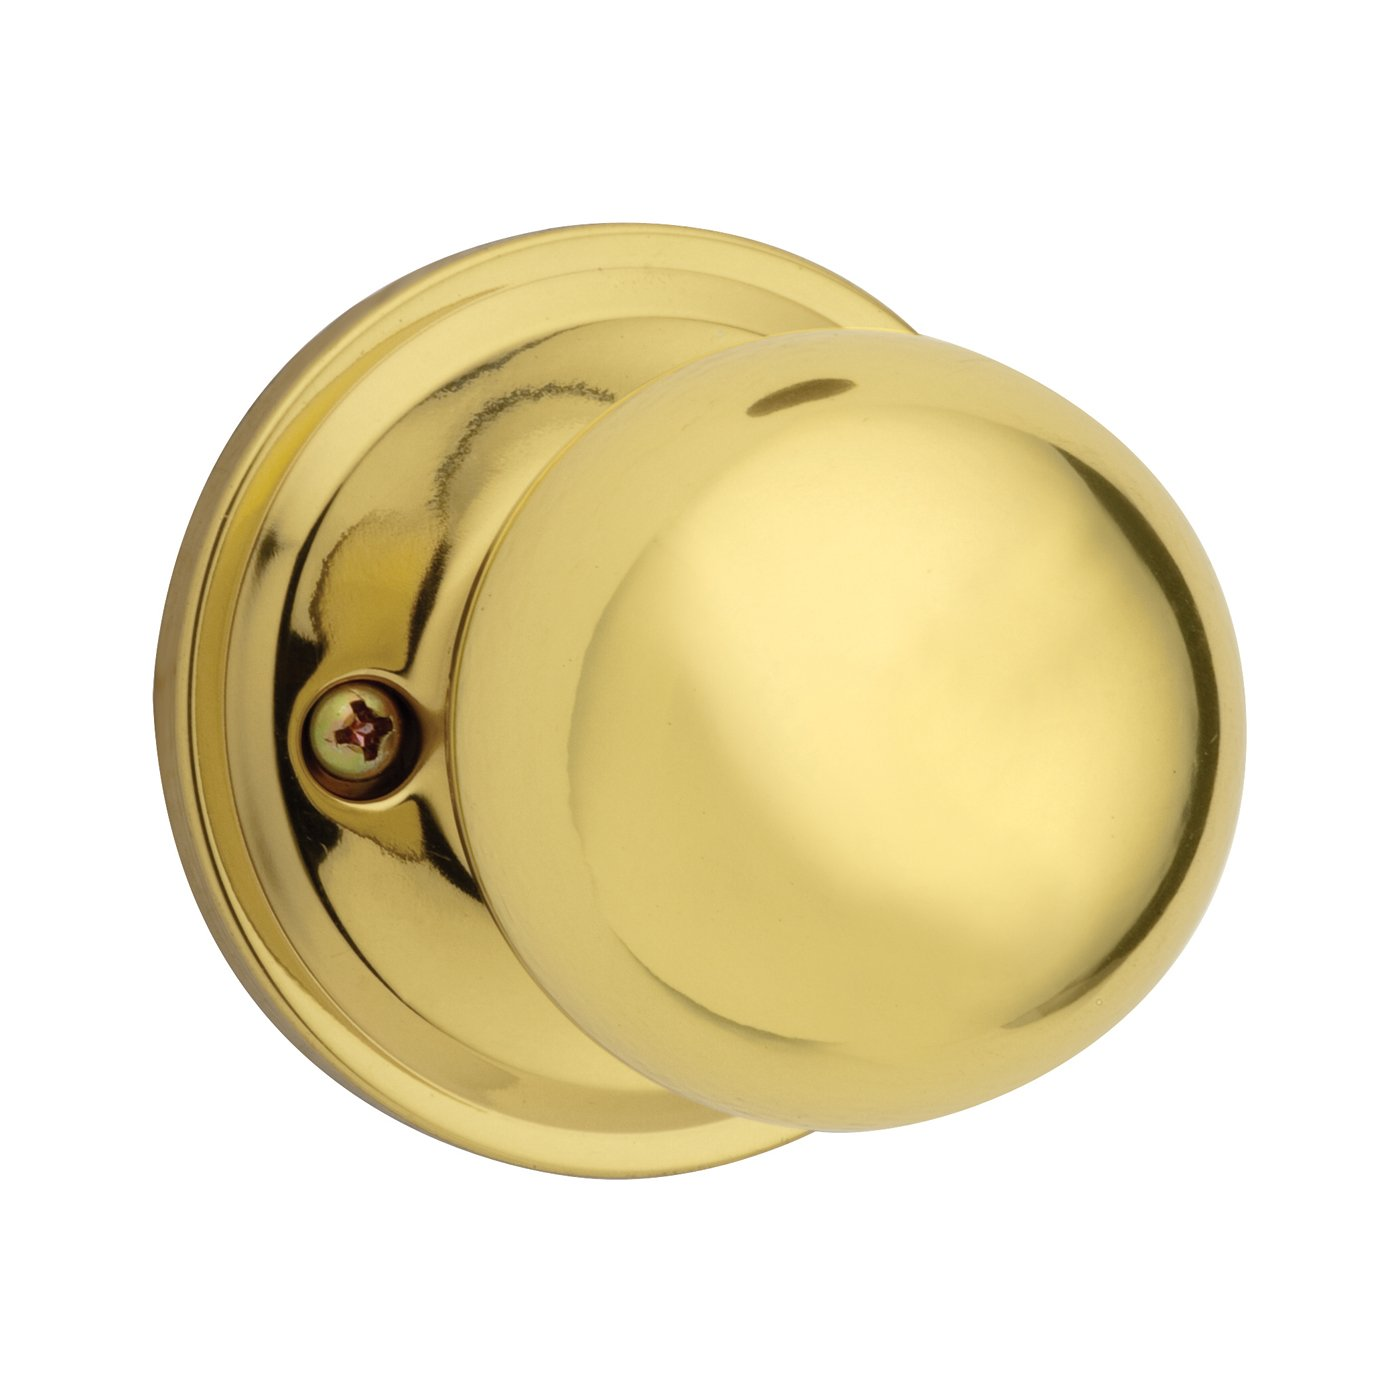 weiser door knob photo - 2  sc 1 st  Door Knobs : weiser door - pezcame.com